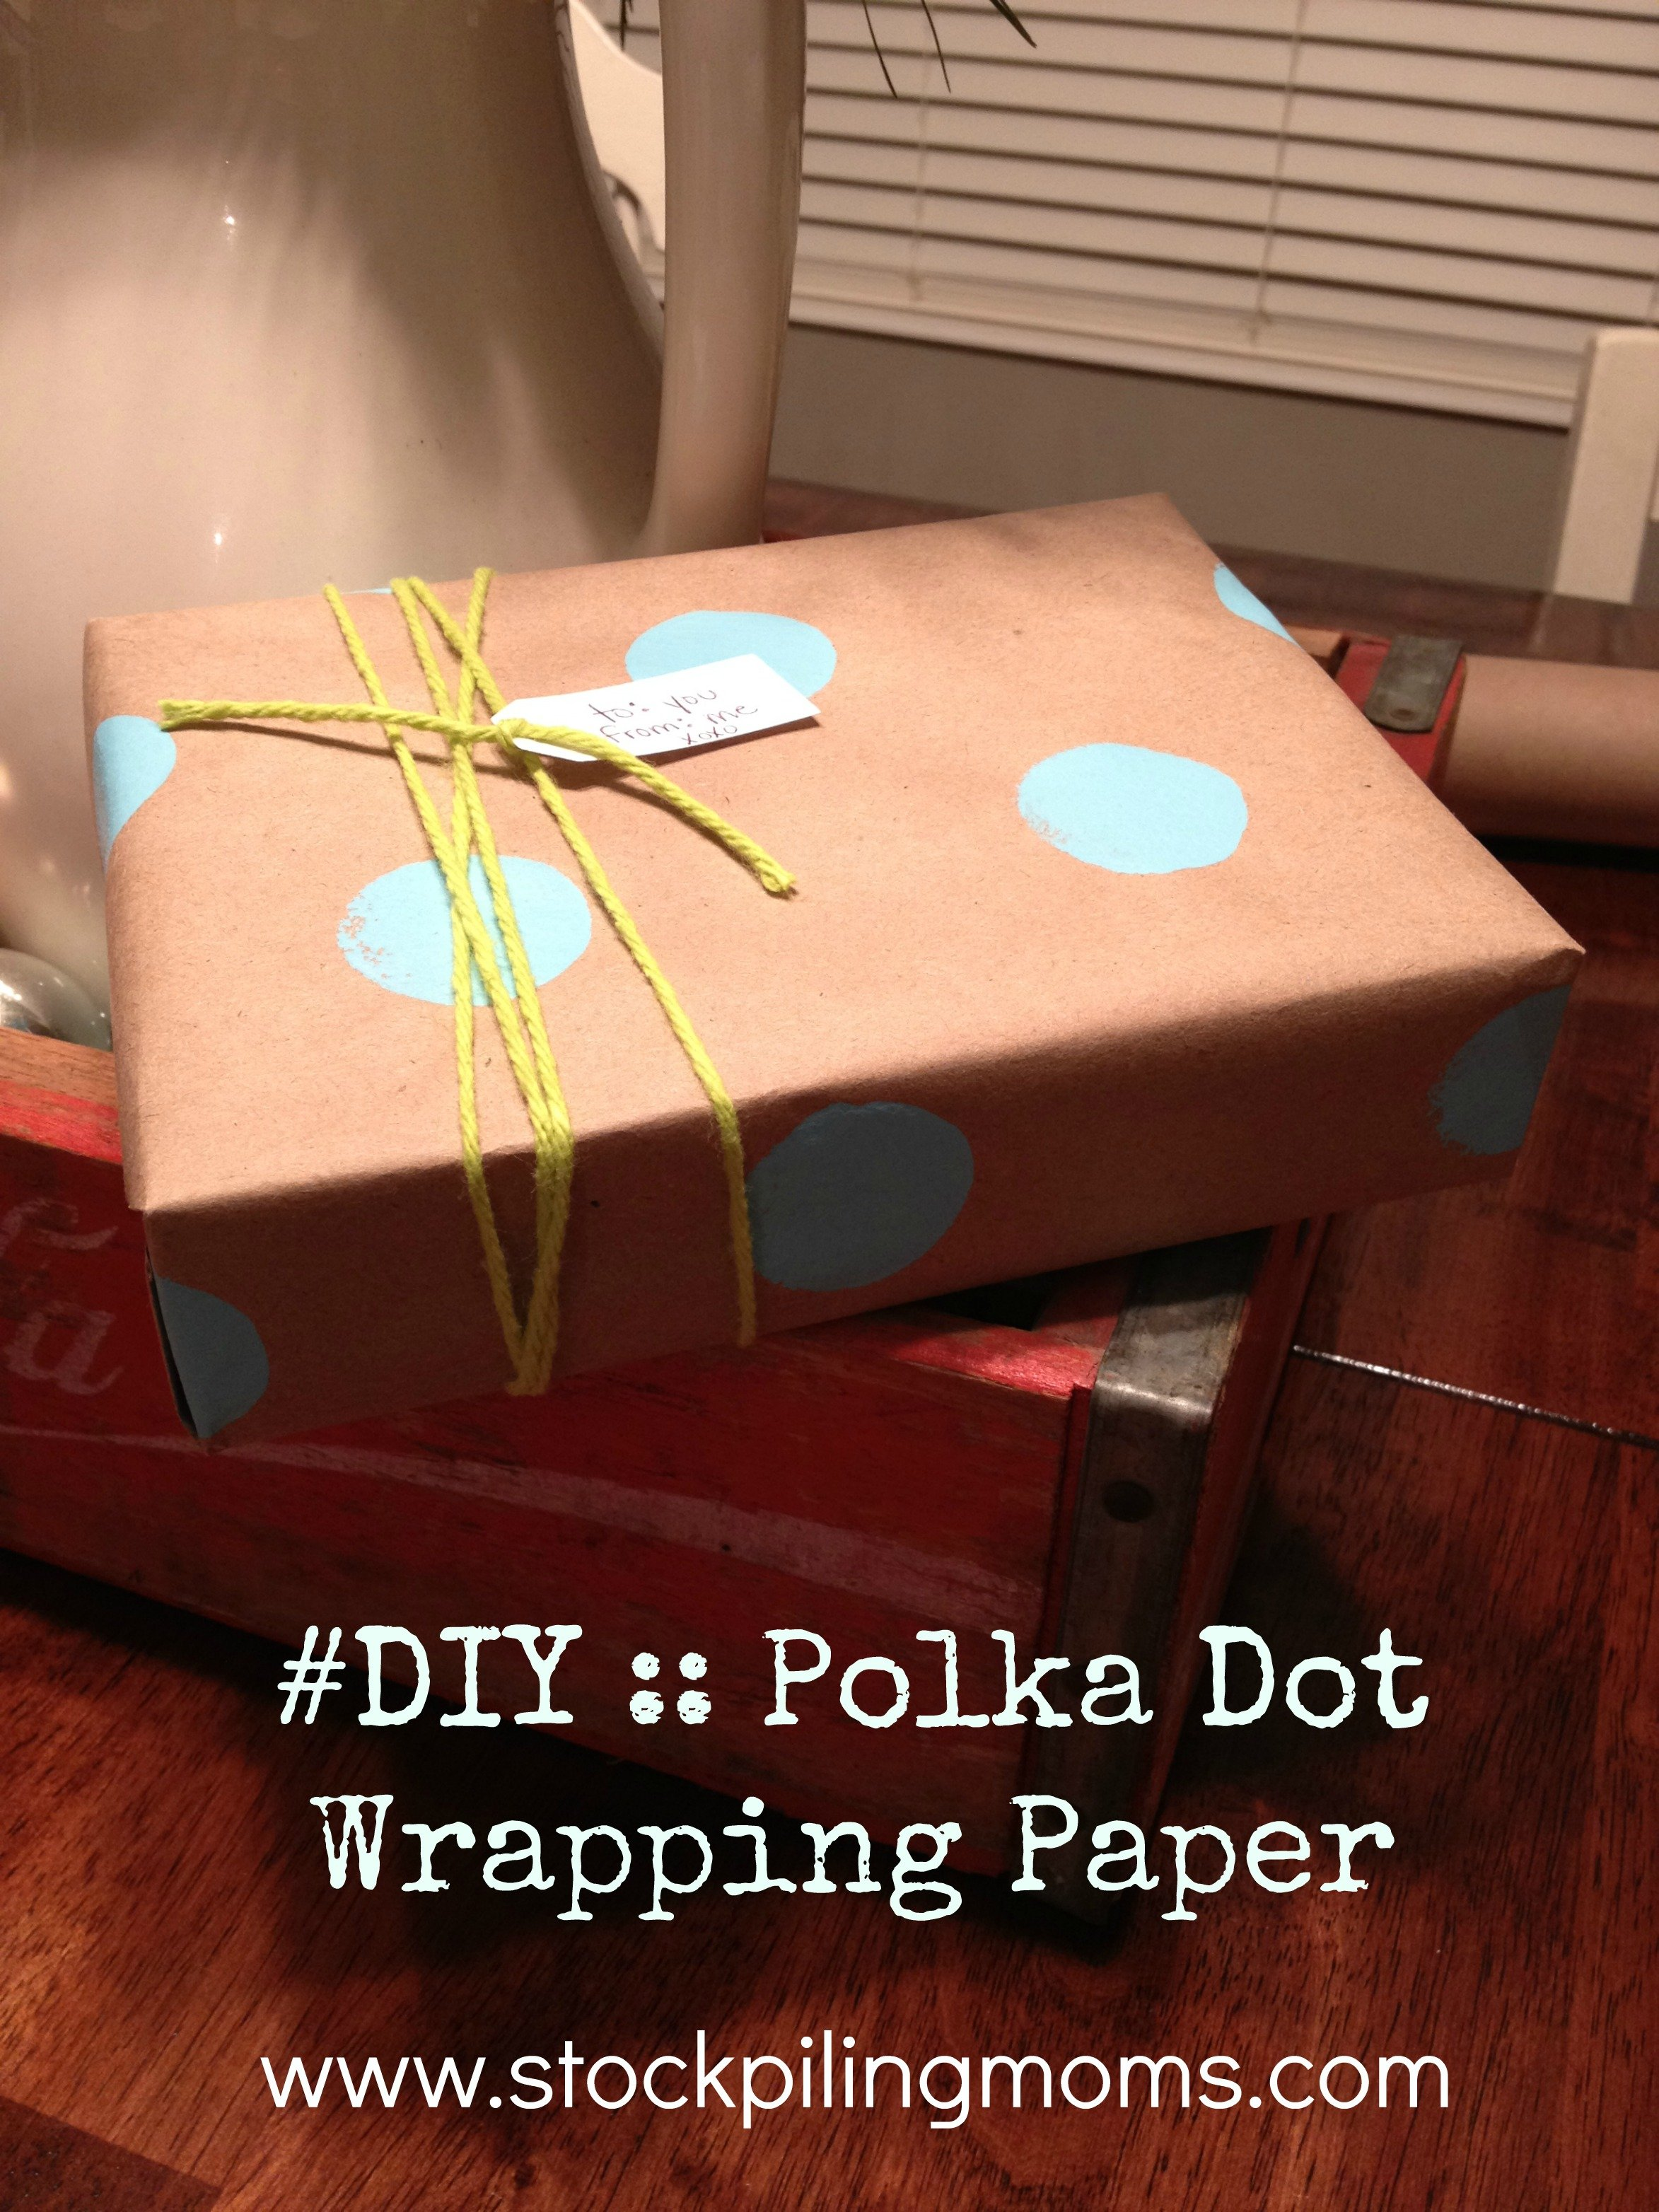 Making your own gift wrap saves money and gives your gift the perfect touch!